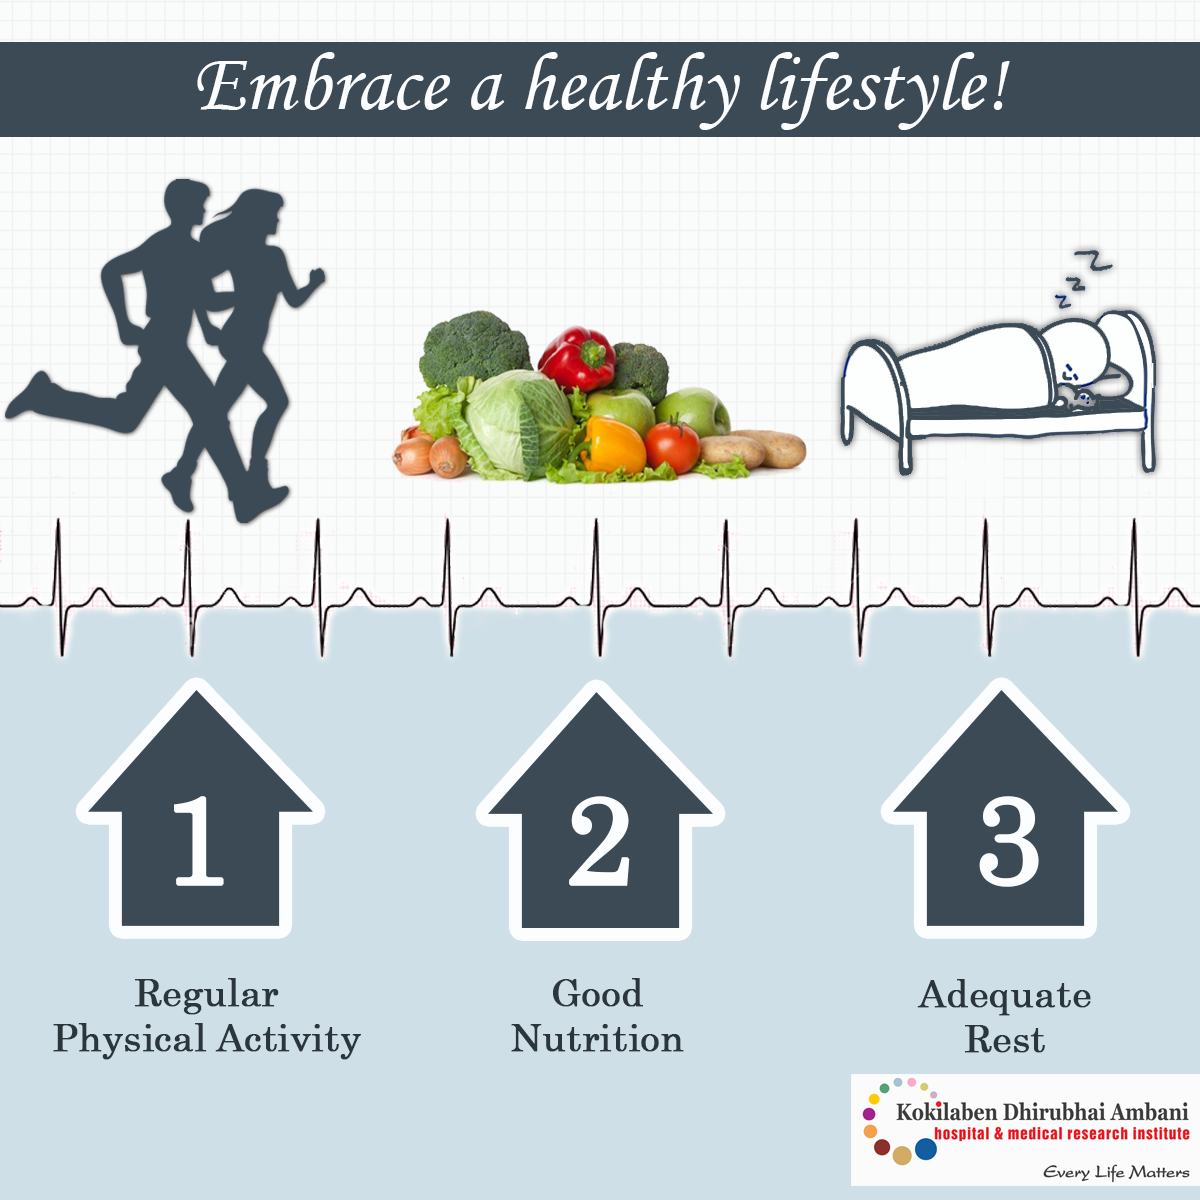 Embrace a healthy lifestyle!